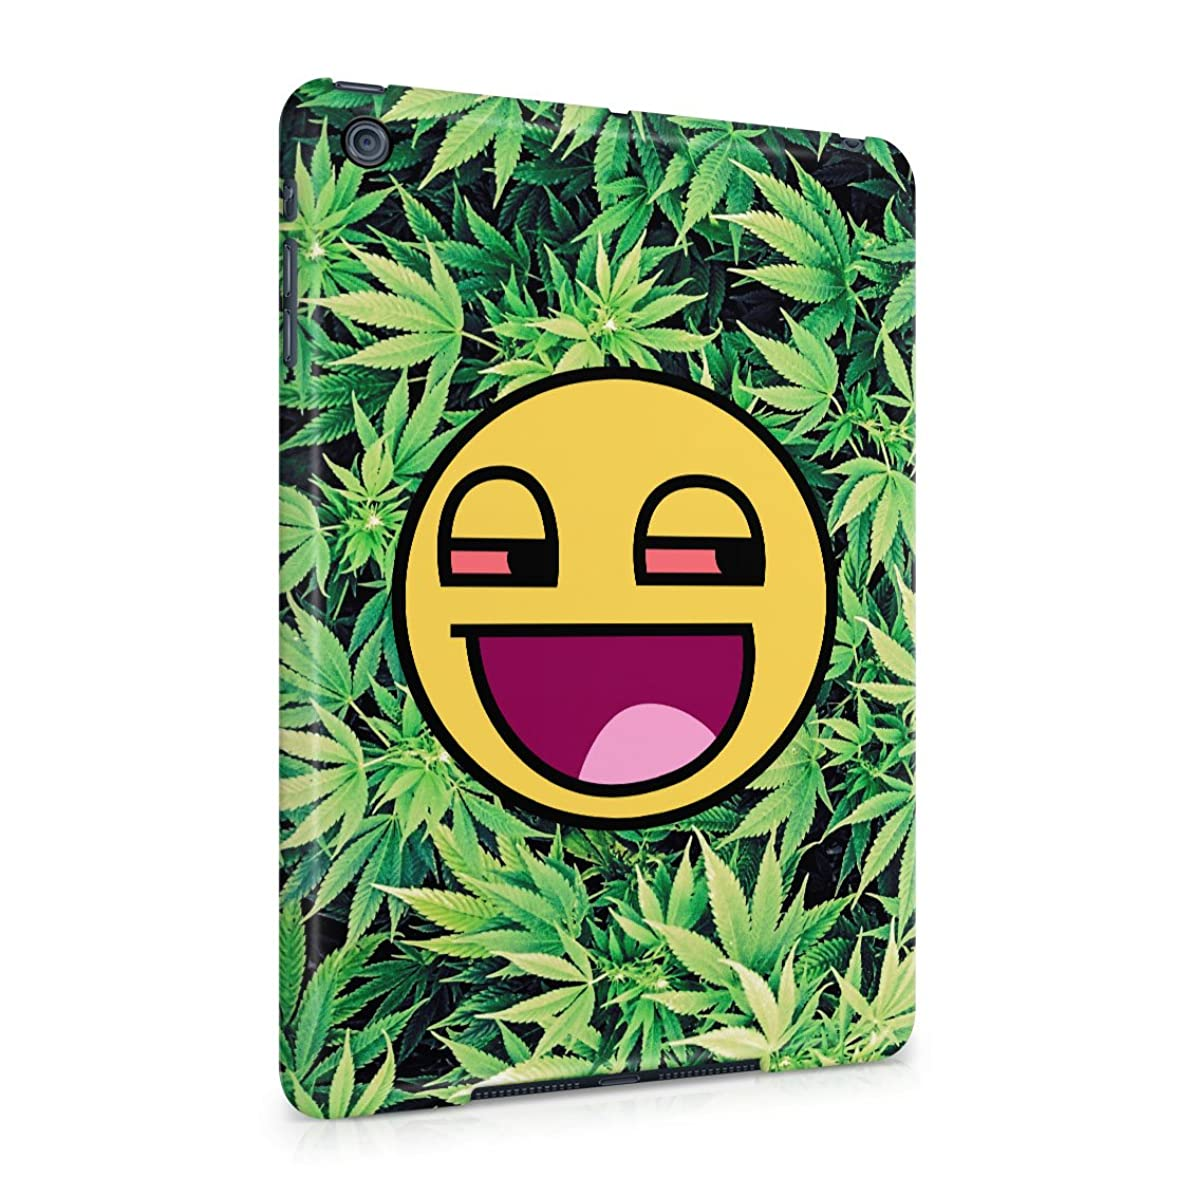 Stoned Smiley Stoner Vaper Face Smoke Weed Pattern Plastic Tablet Snap On Back Case Cover Shell For iPad Mini